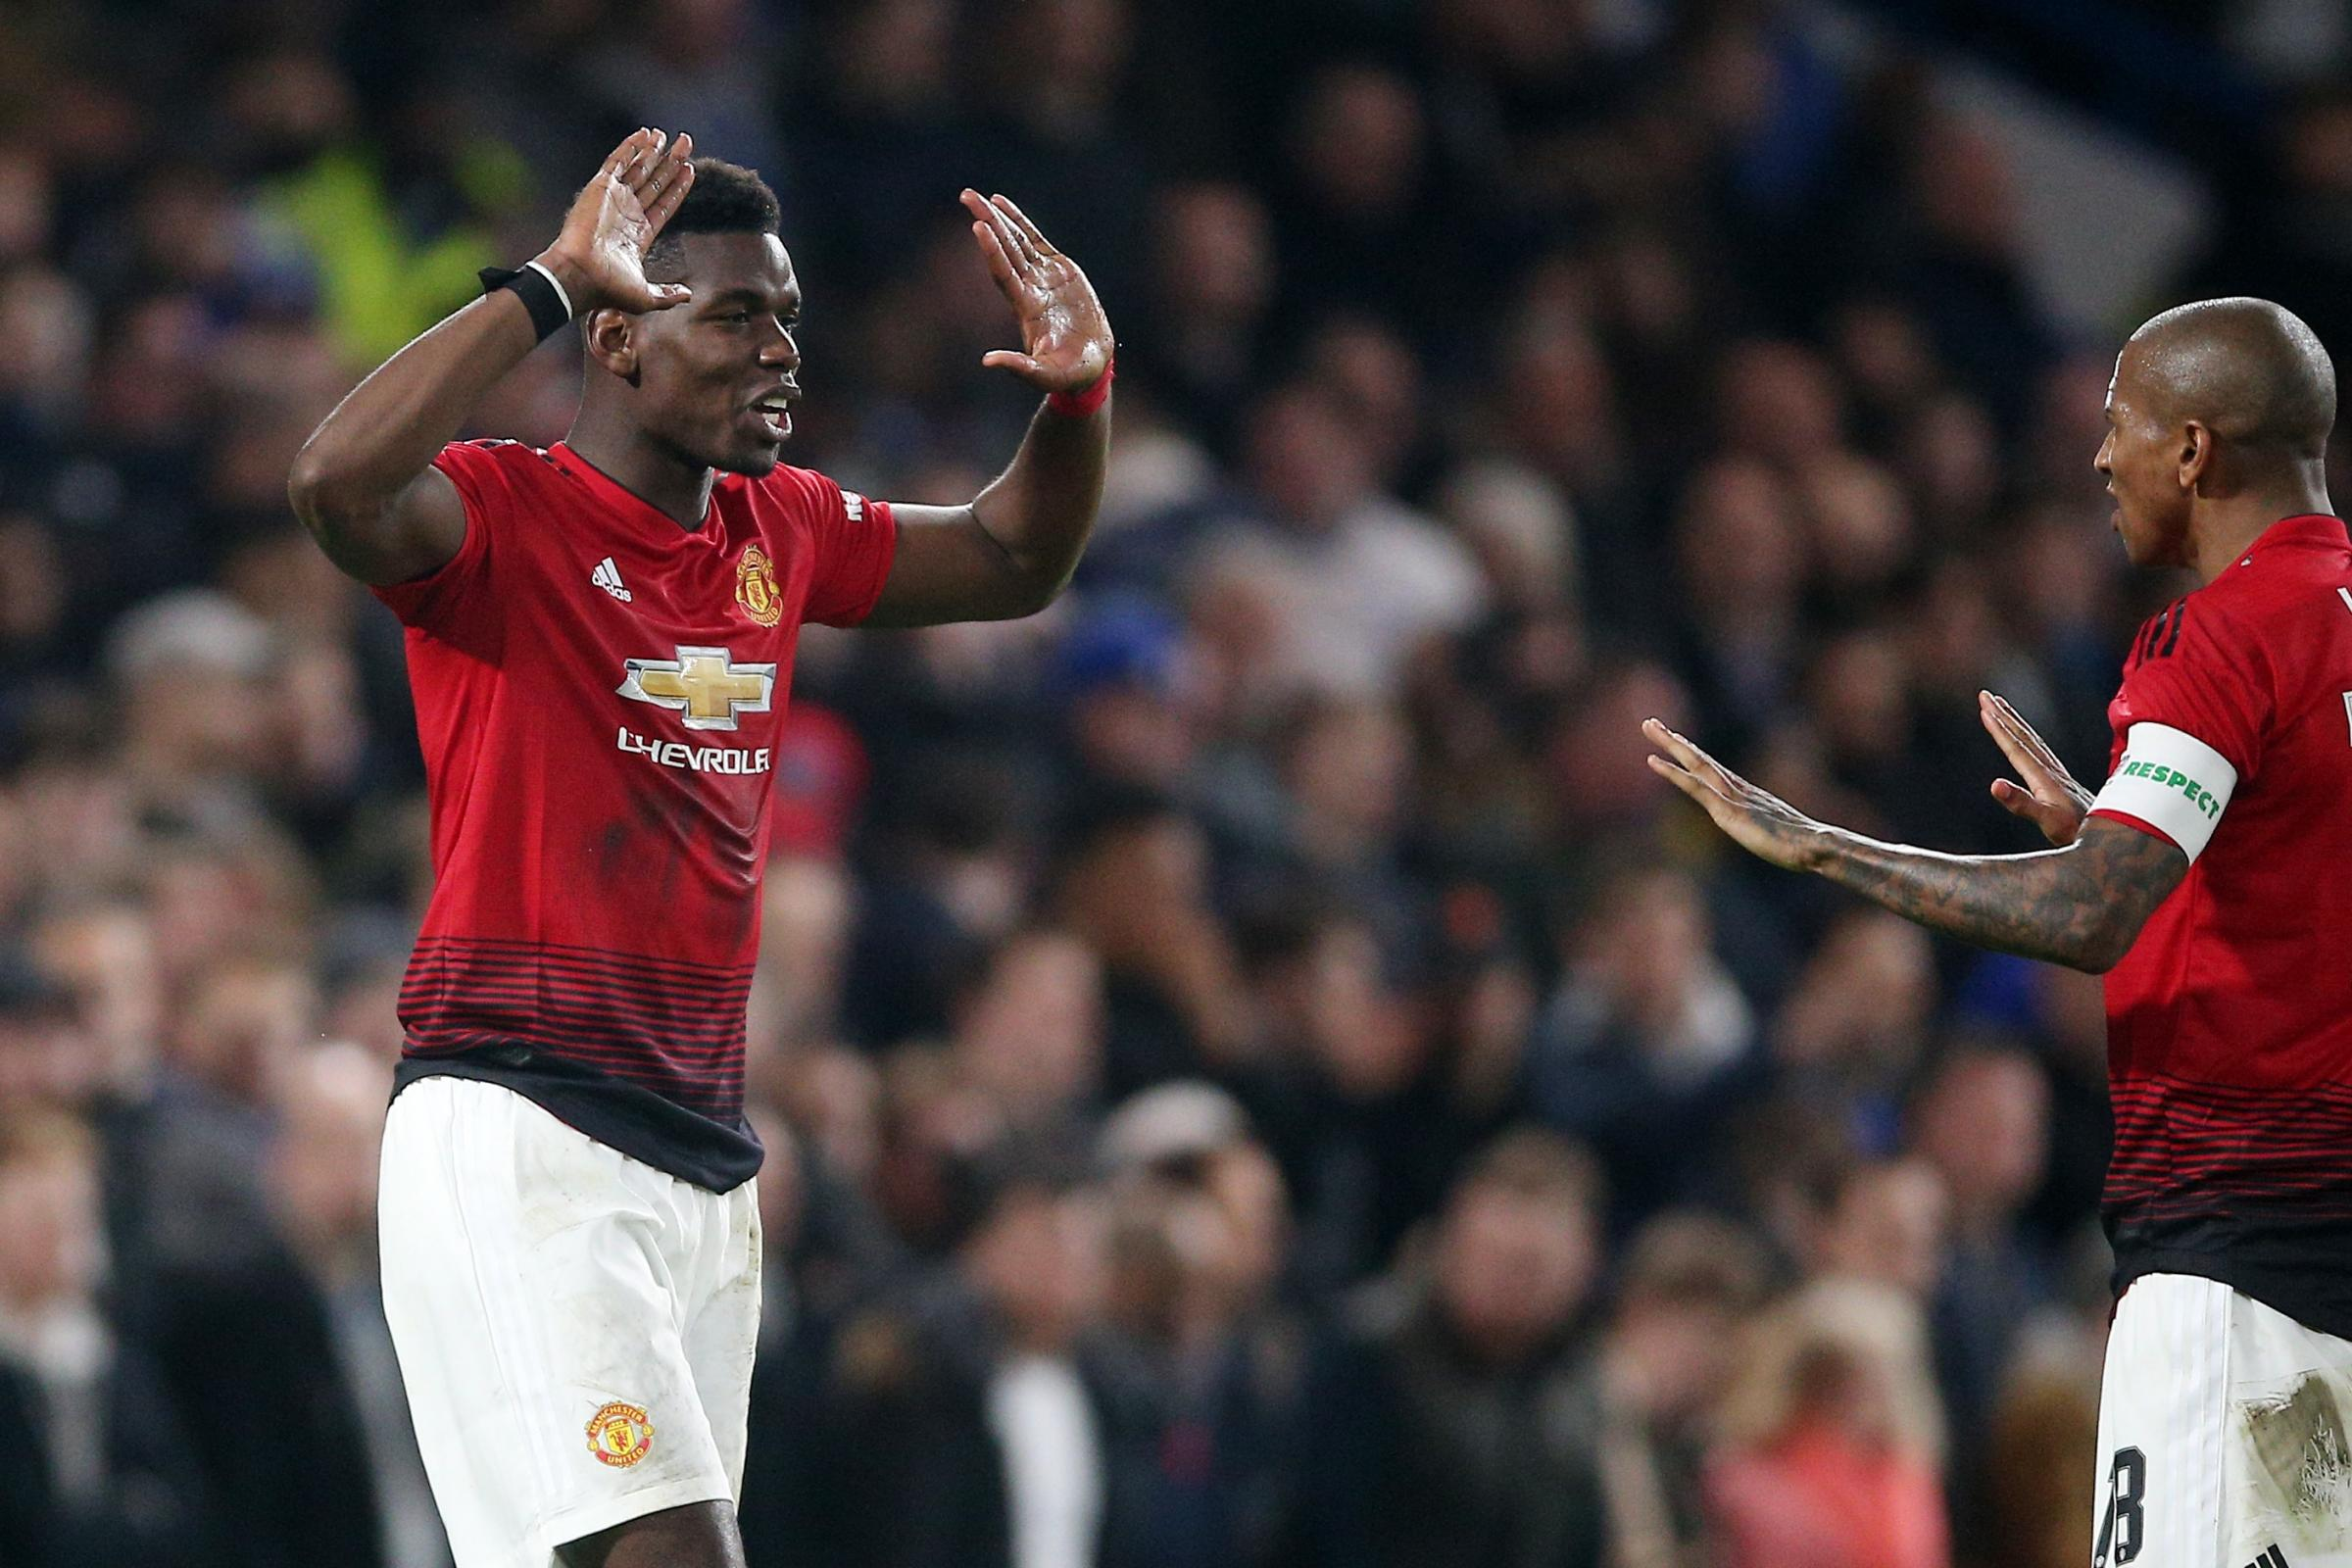 Manchester United drawn away to Wolves in FA Cup quarter-finals - Bournemouth Echo